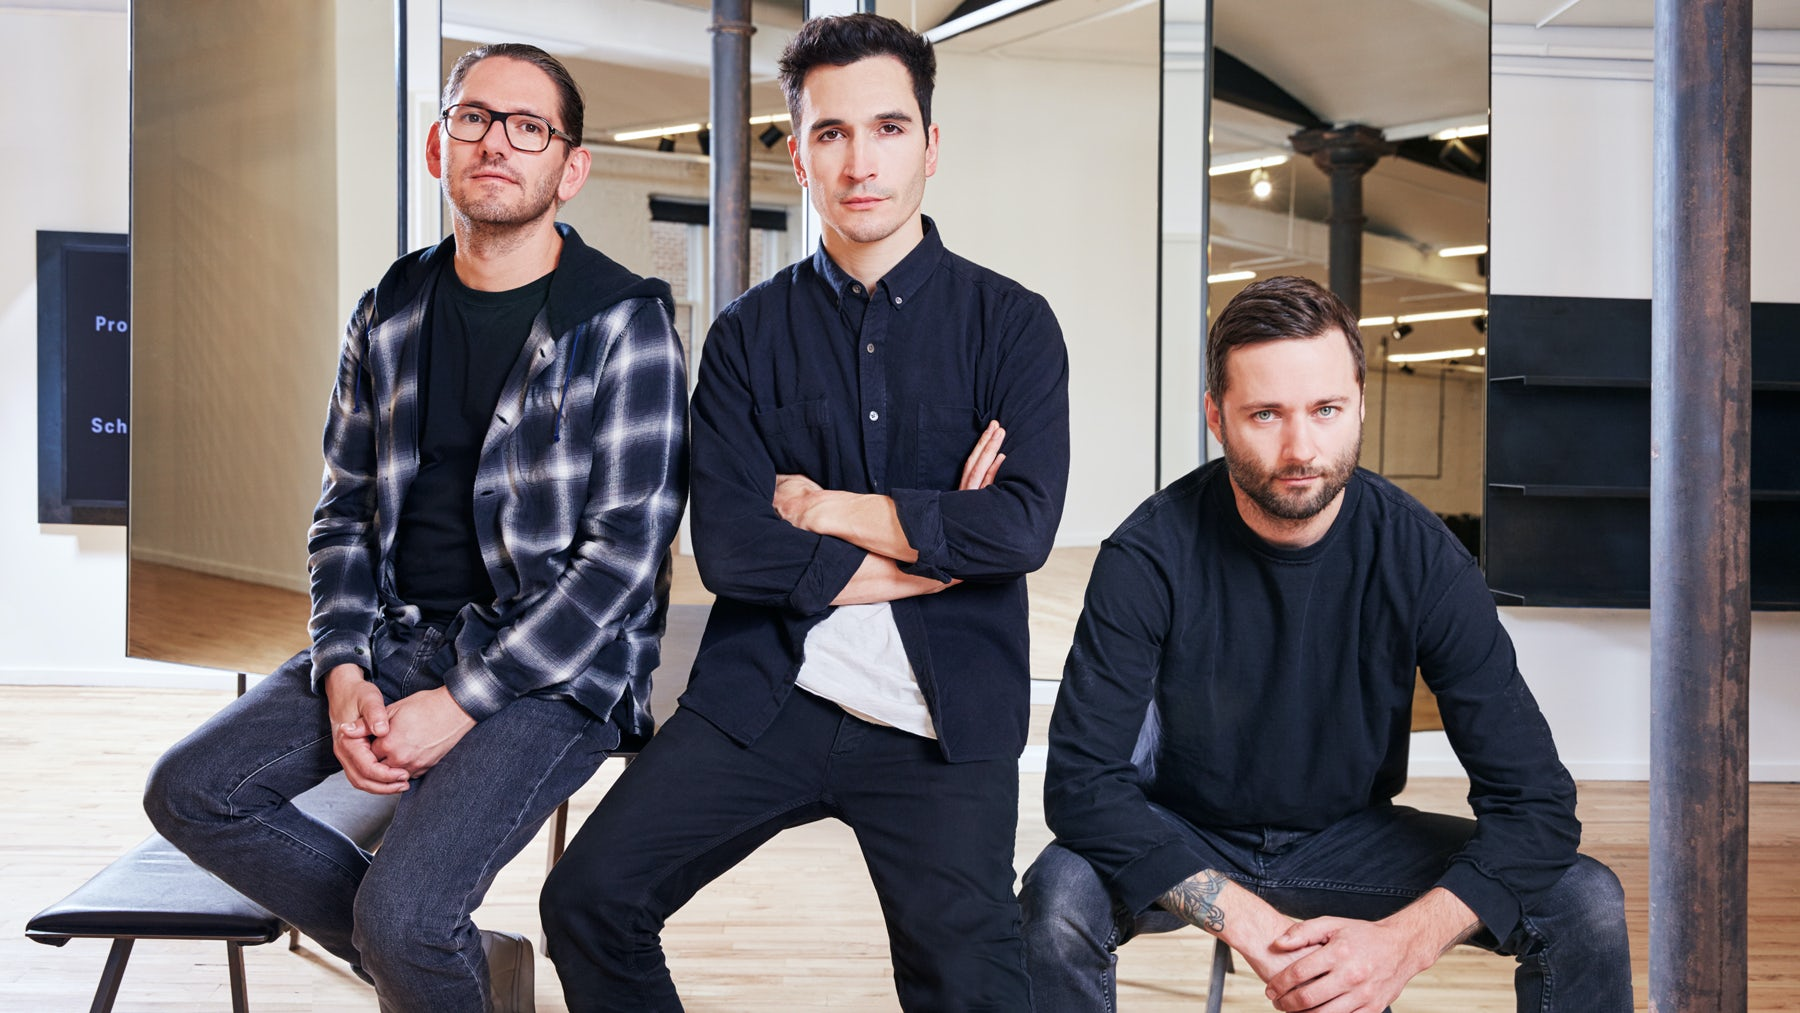 Are the proenza schouler designers dating